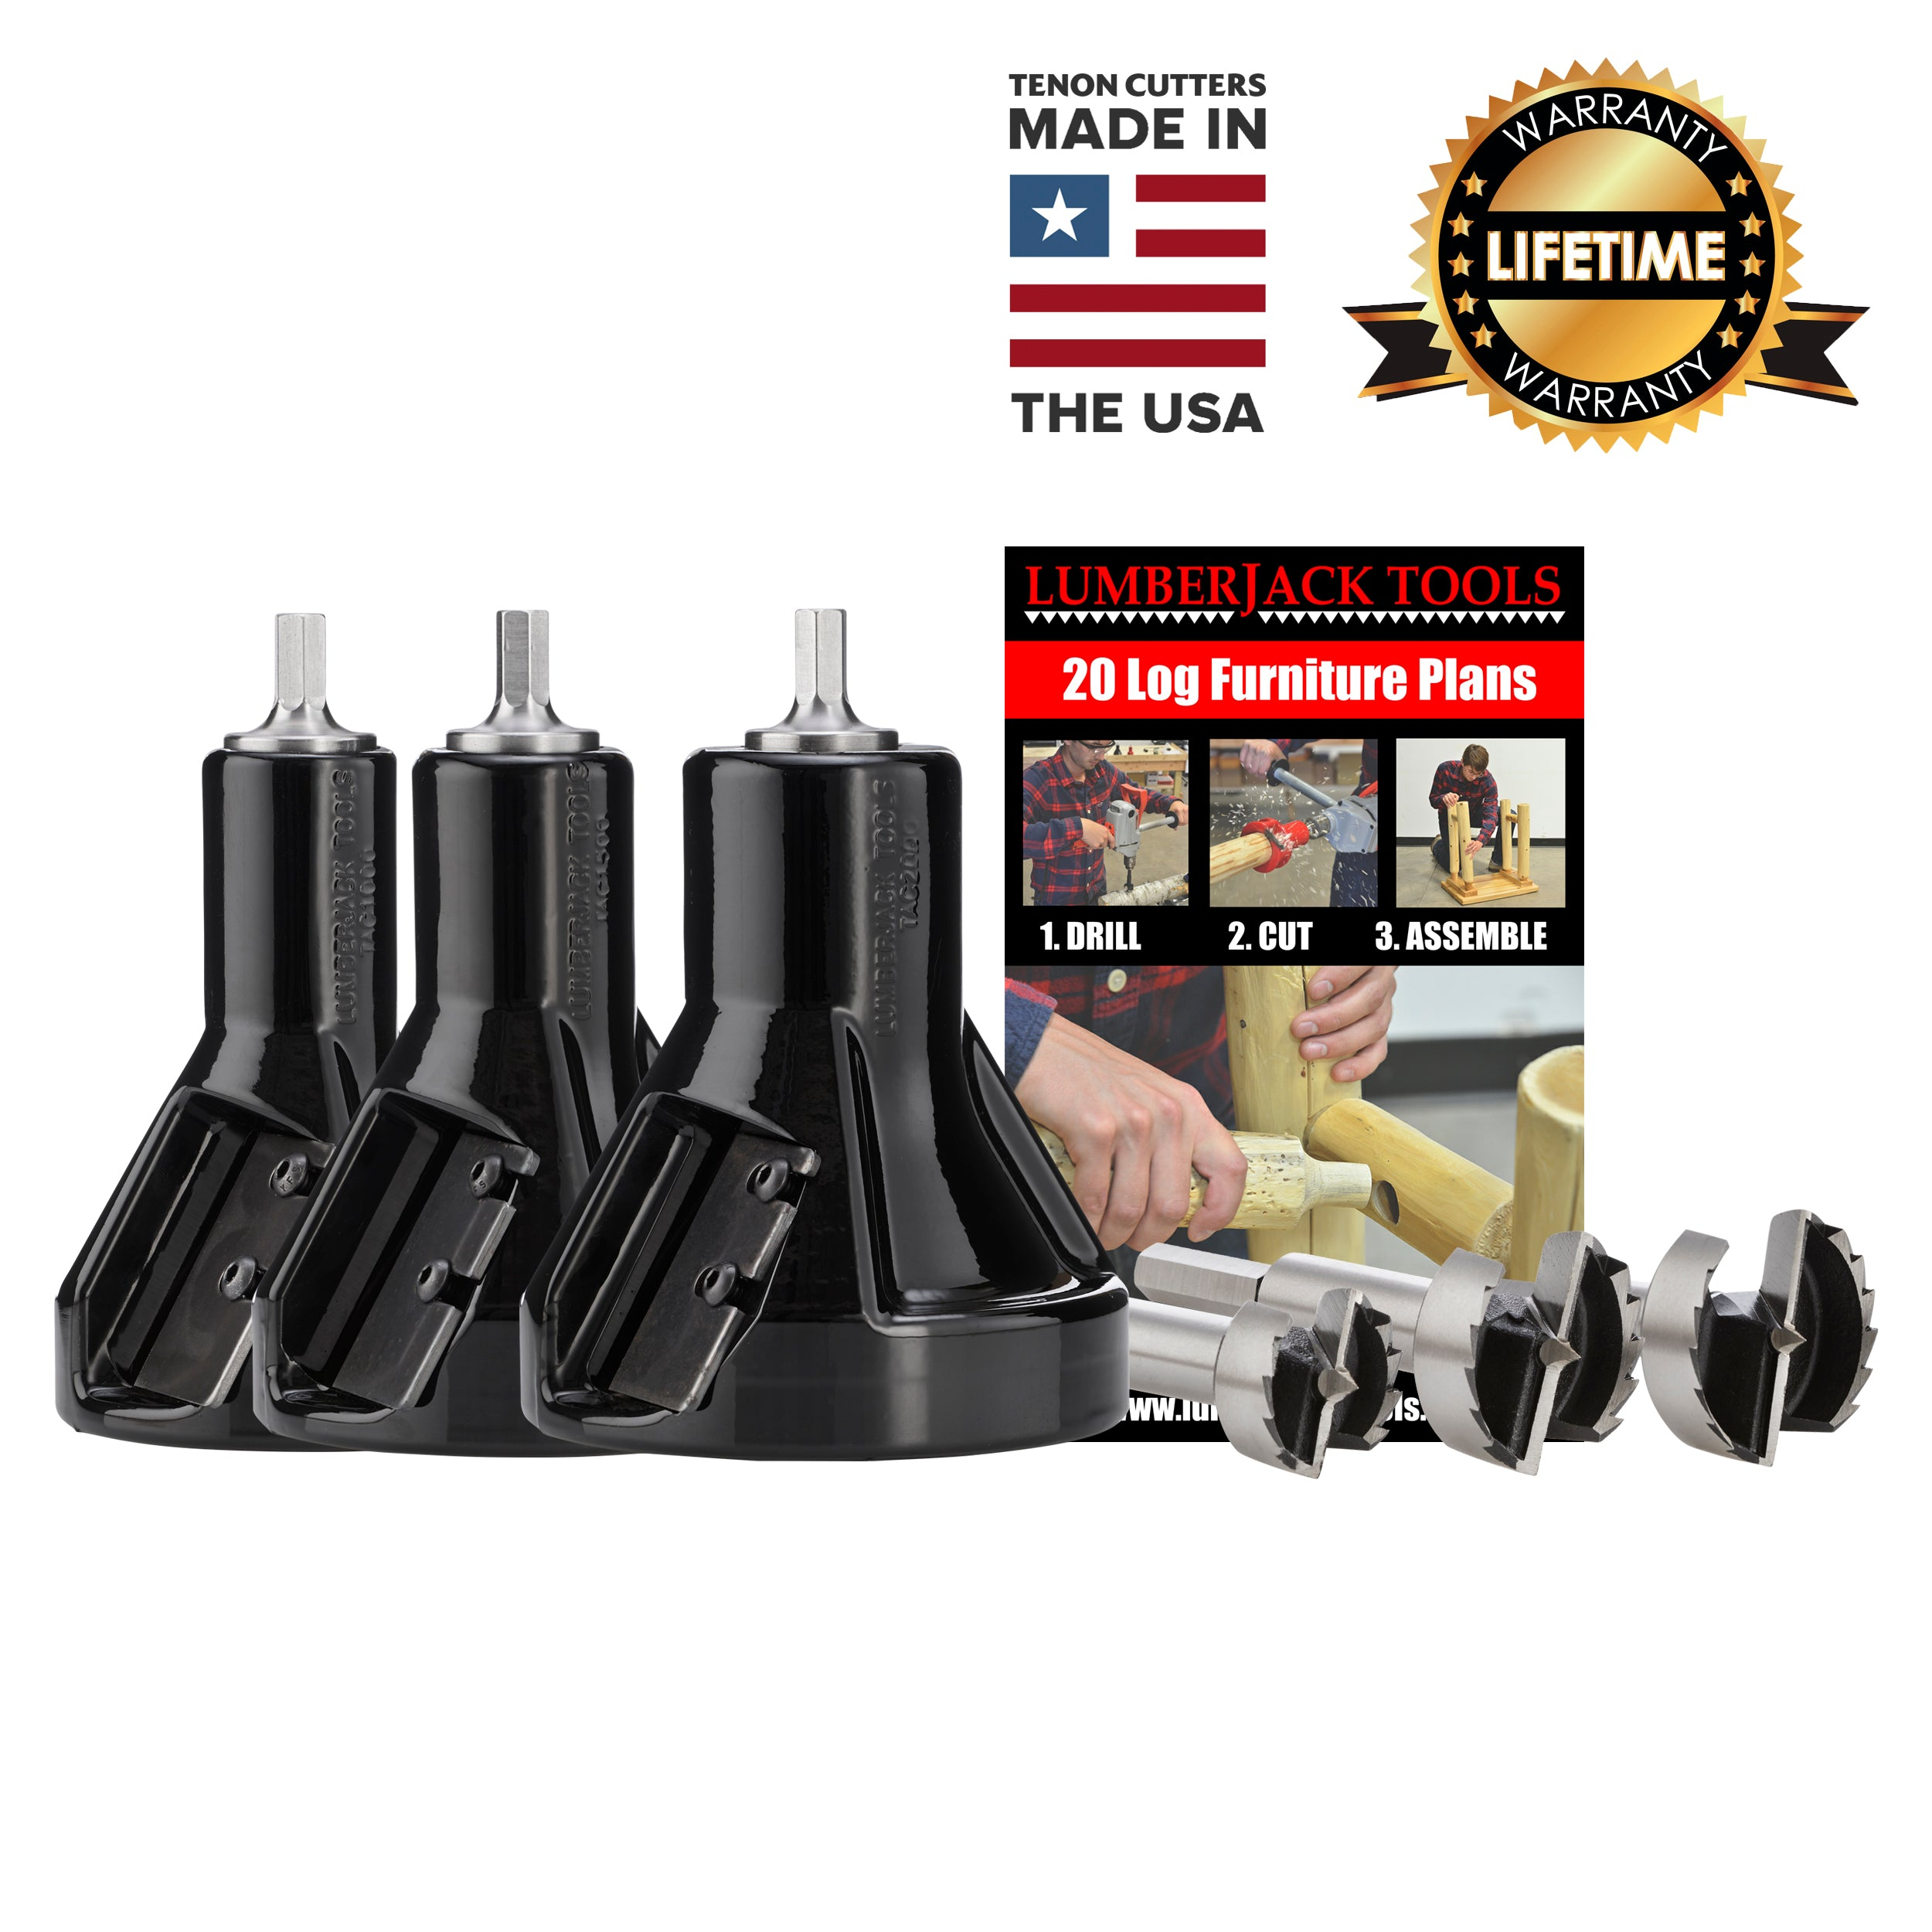 Commercial Series Master tenon cutter kit- USA Made Tenon Cutters